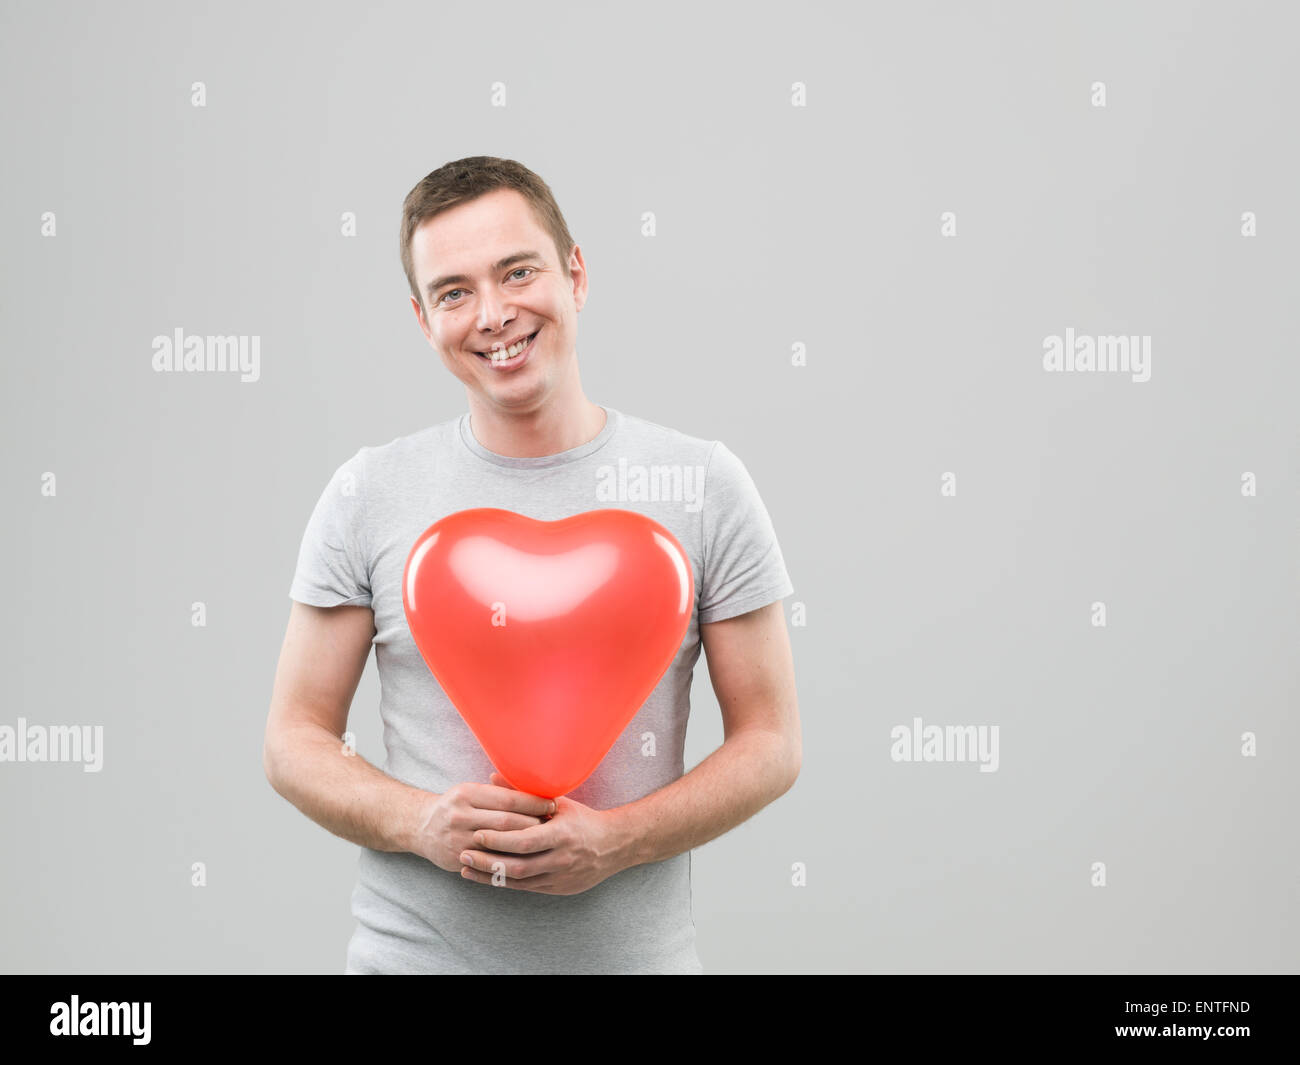 young caucasian man holding heart shaped balloon and smiling. copy space available - Stock Image